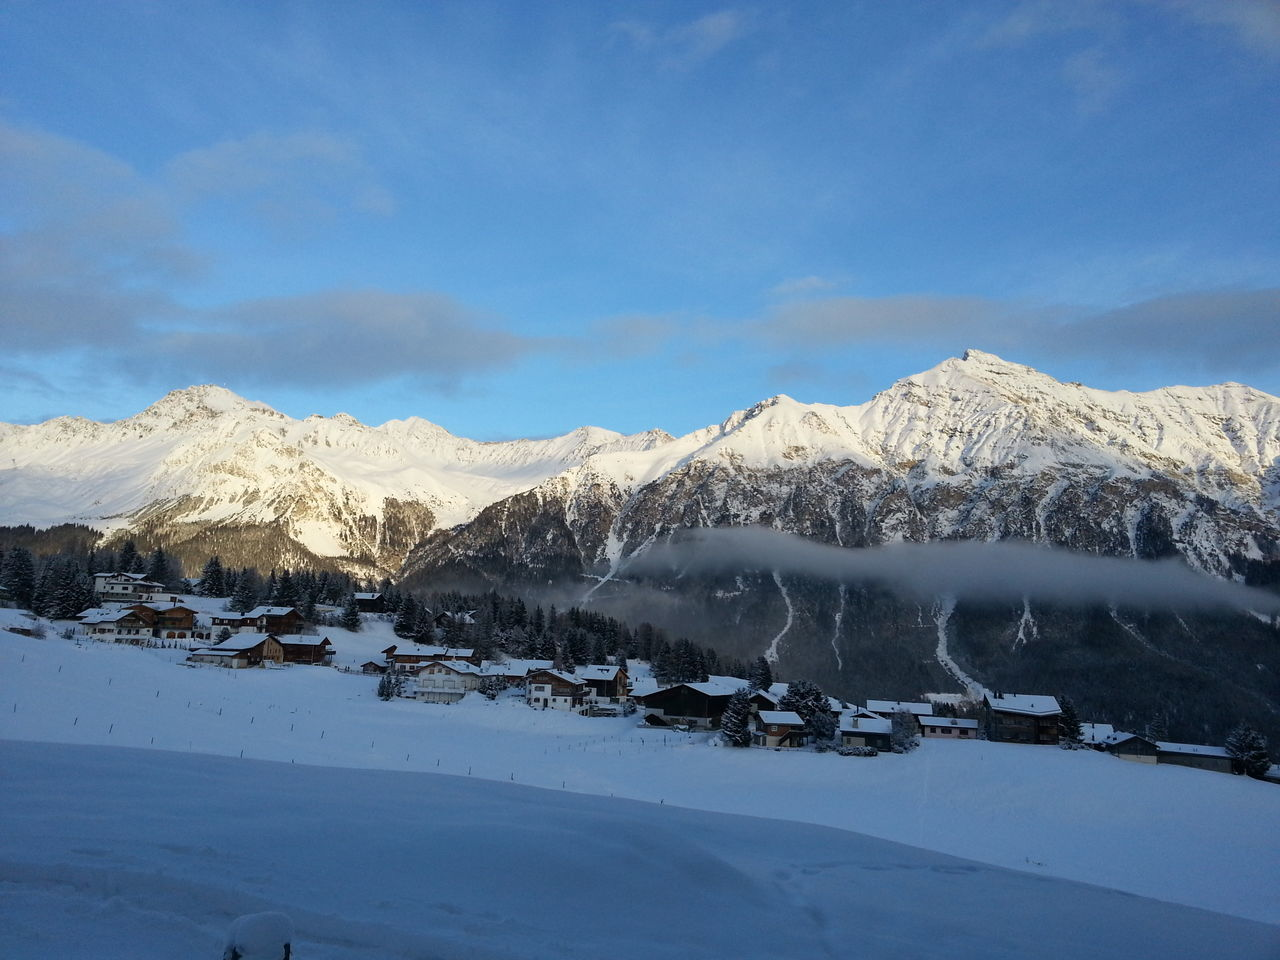 Mountains Mountain View Mountain_collection Enjoying Life Check This Out Snow Nature Photography January2016 Eye4photography  Switzerland Panoramic Landscape EyeEm Nature Lover Wintertime Taking Photos Smartphonephotography Nature_collection